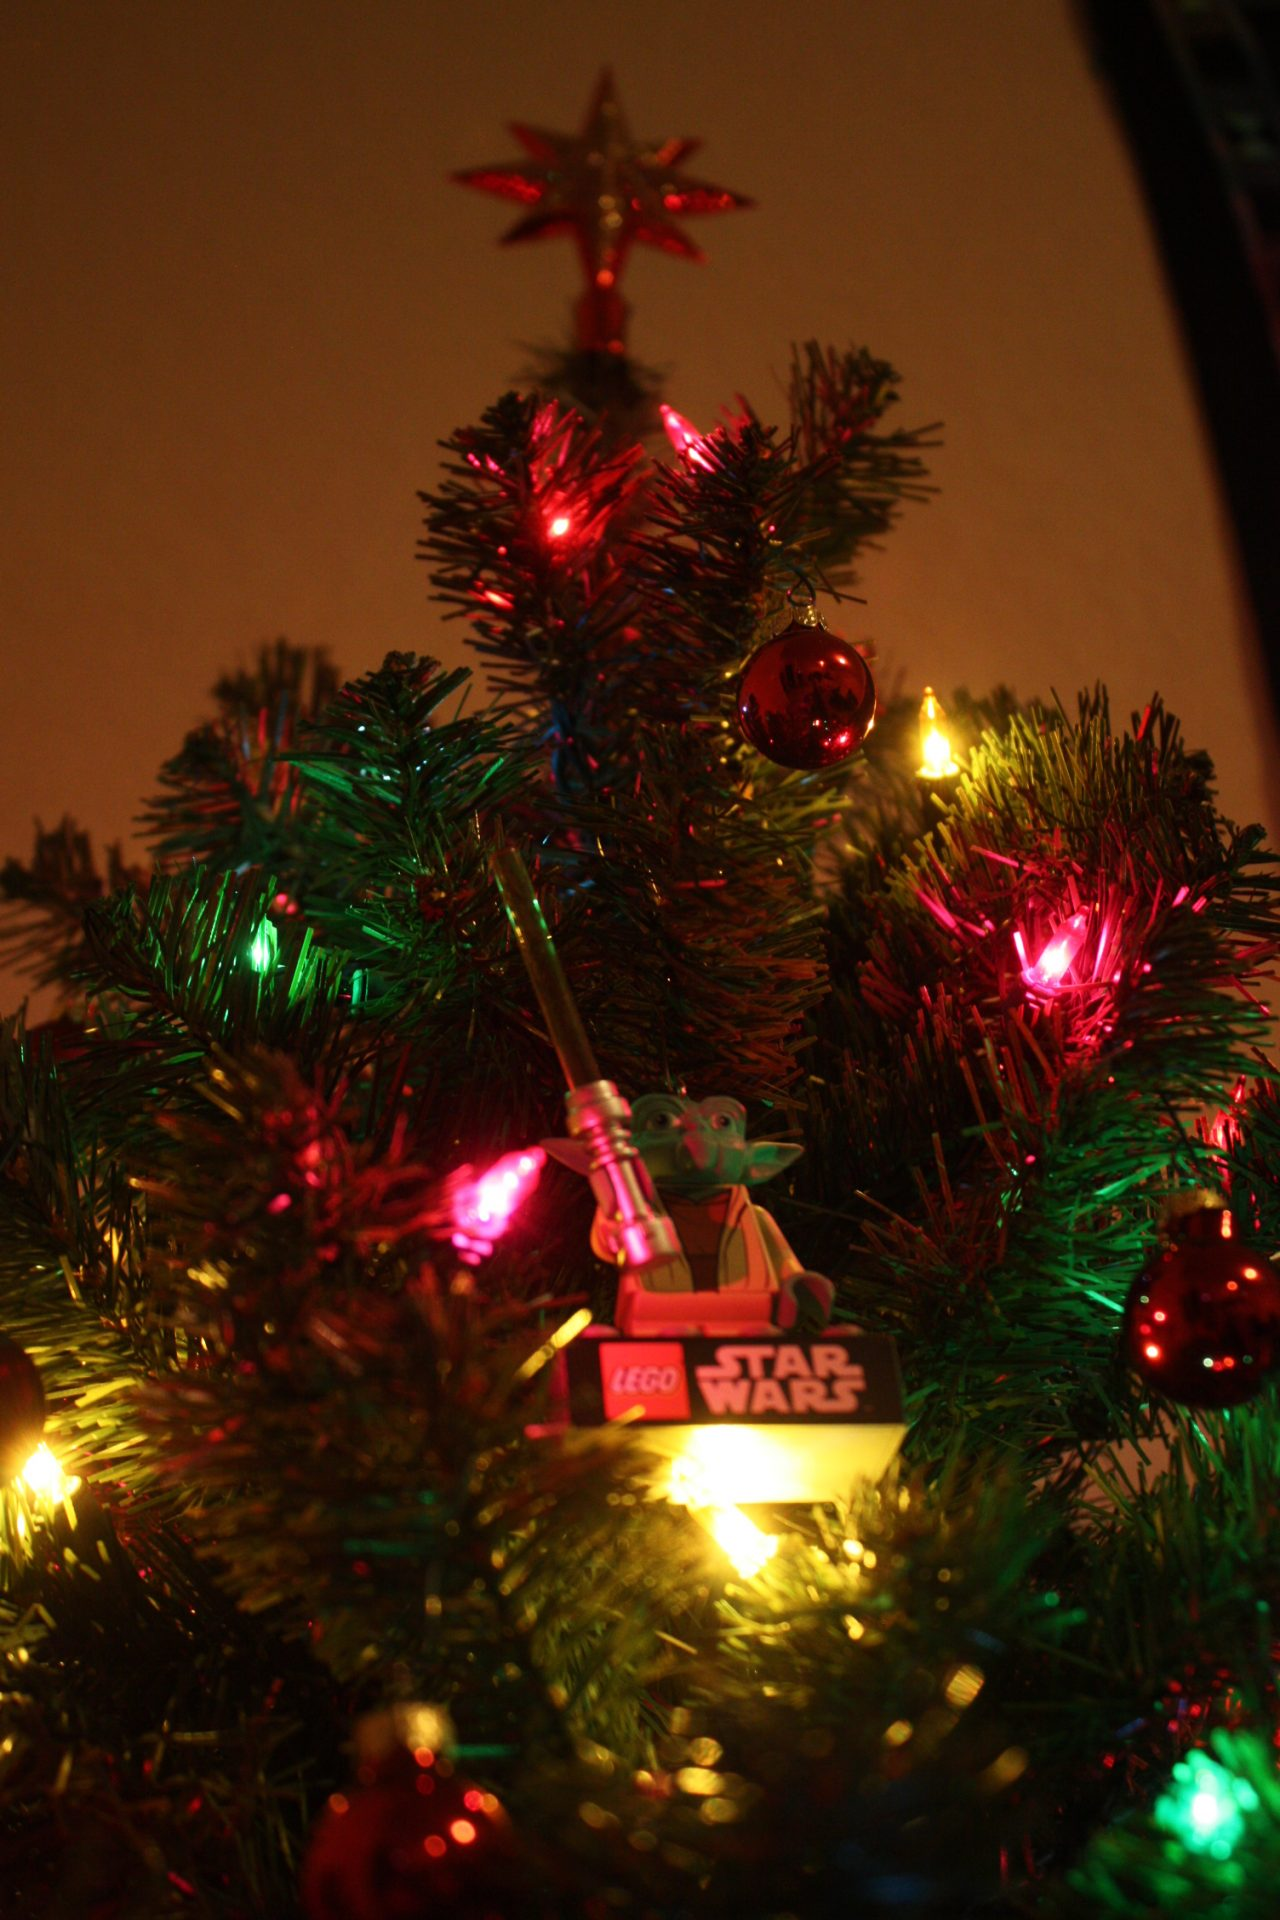 Lego Yoda Christmas Ornament and Star Topper